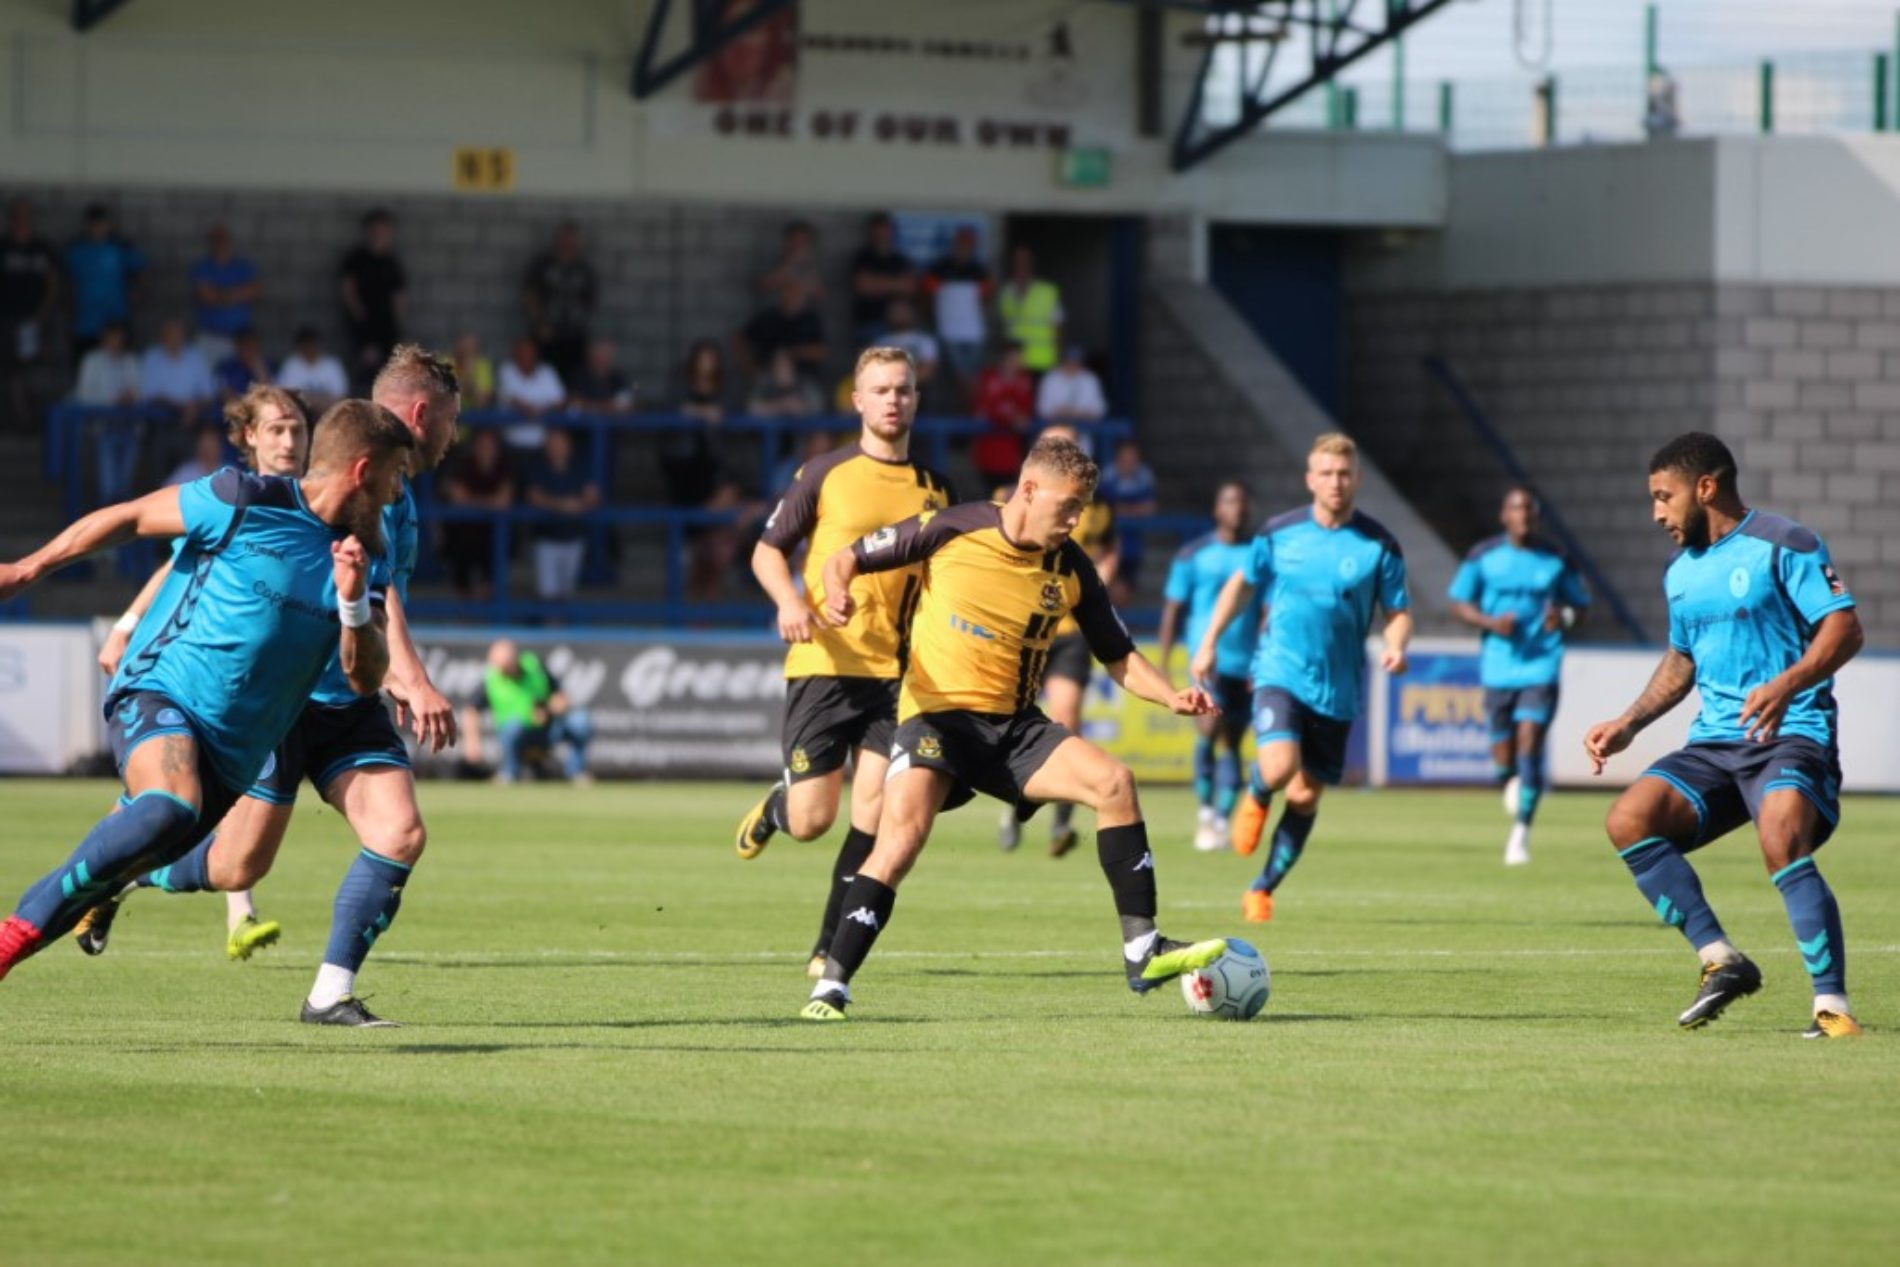 FEATURE | High's & Low's of Southport & Telford's Seasons